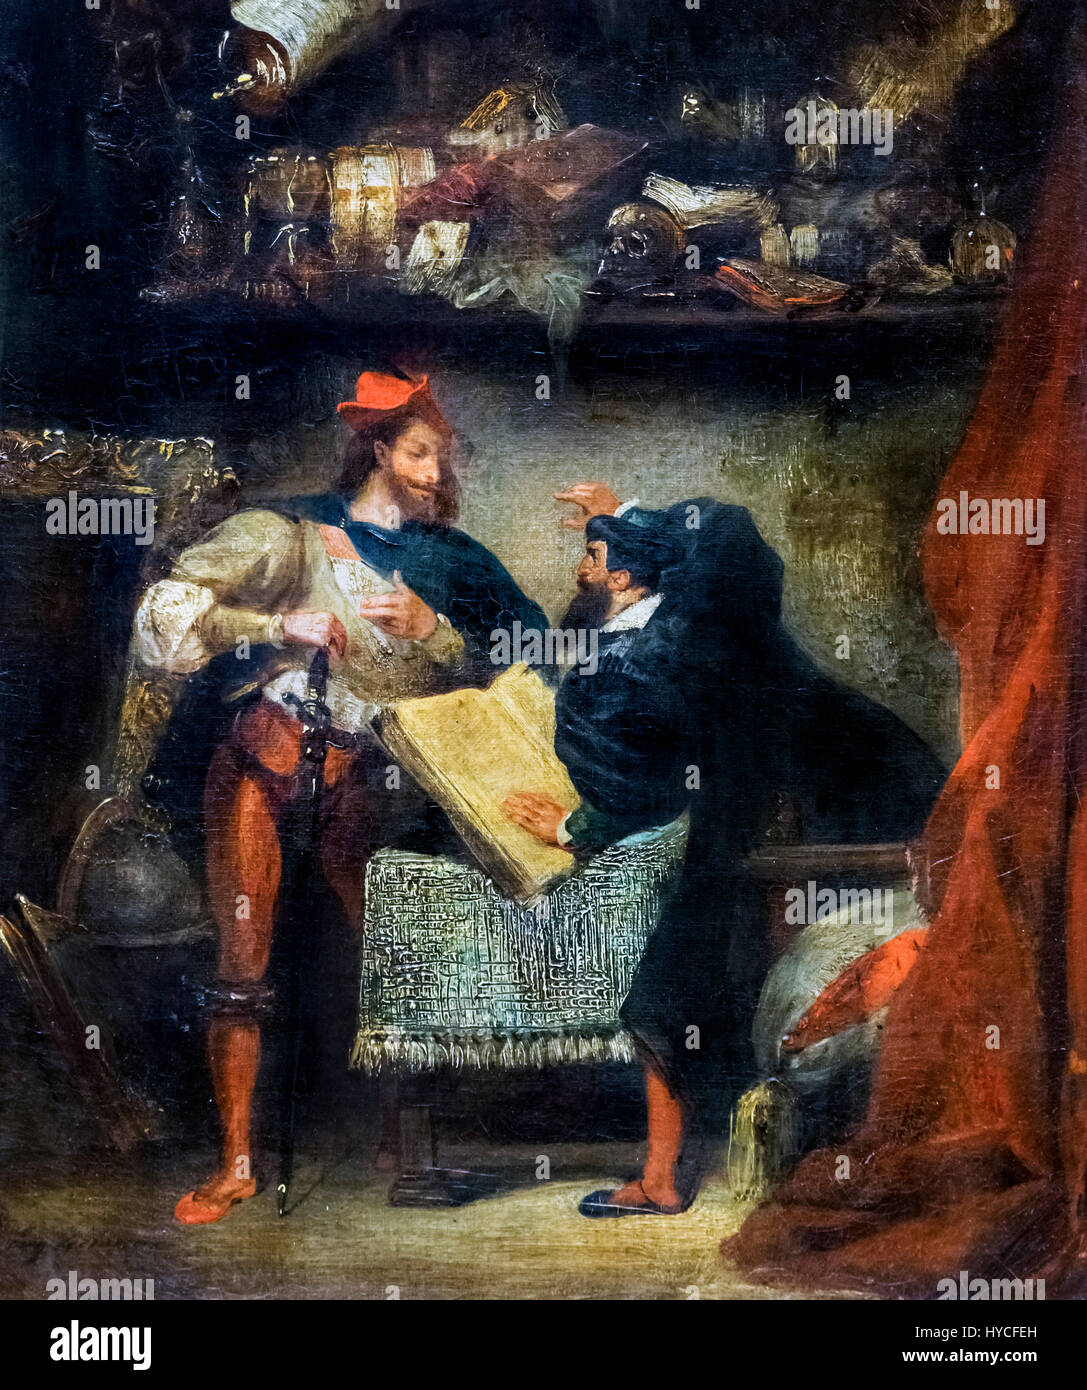 Faust and Mephistopheles by Eugene Delacroix, oil on canvas, c.1827-28 - Stock Image